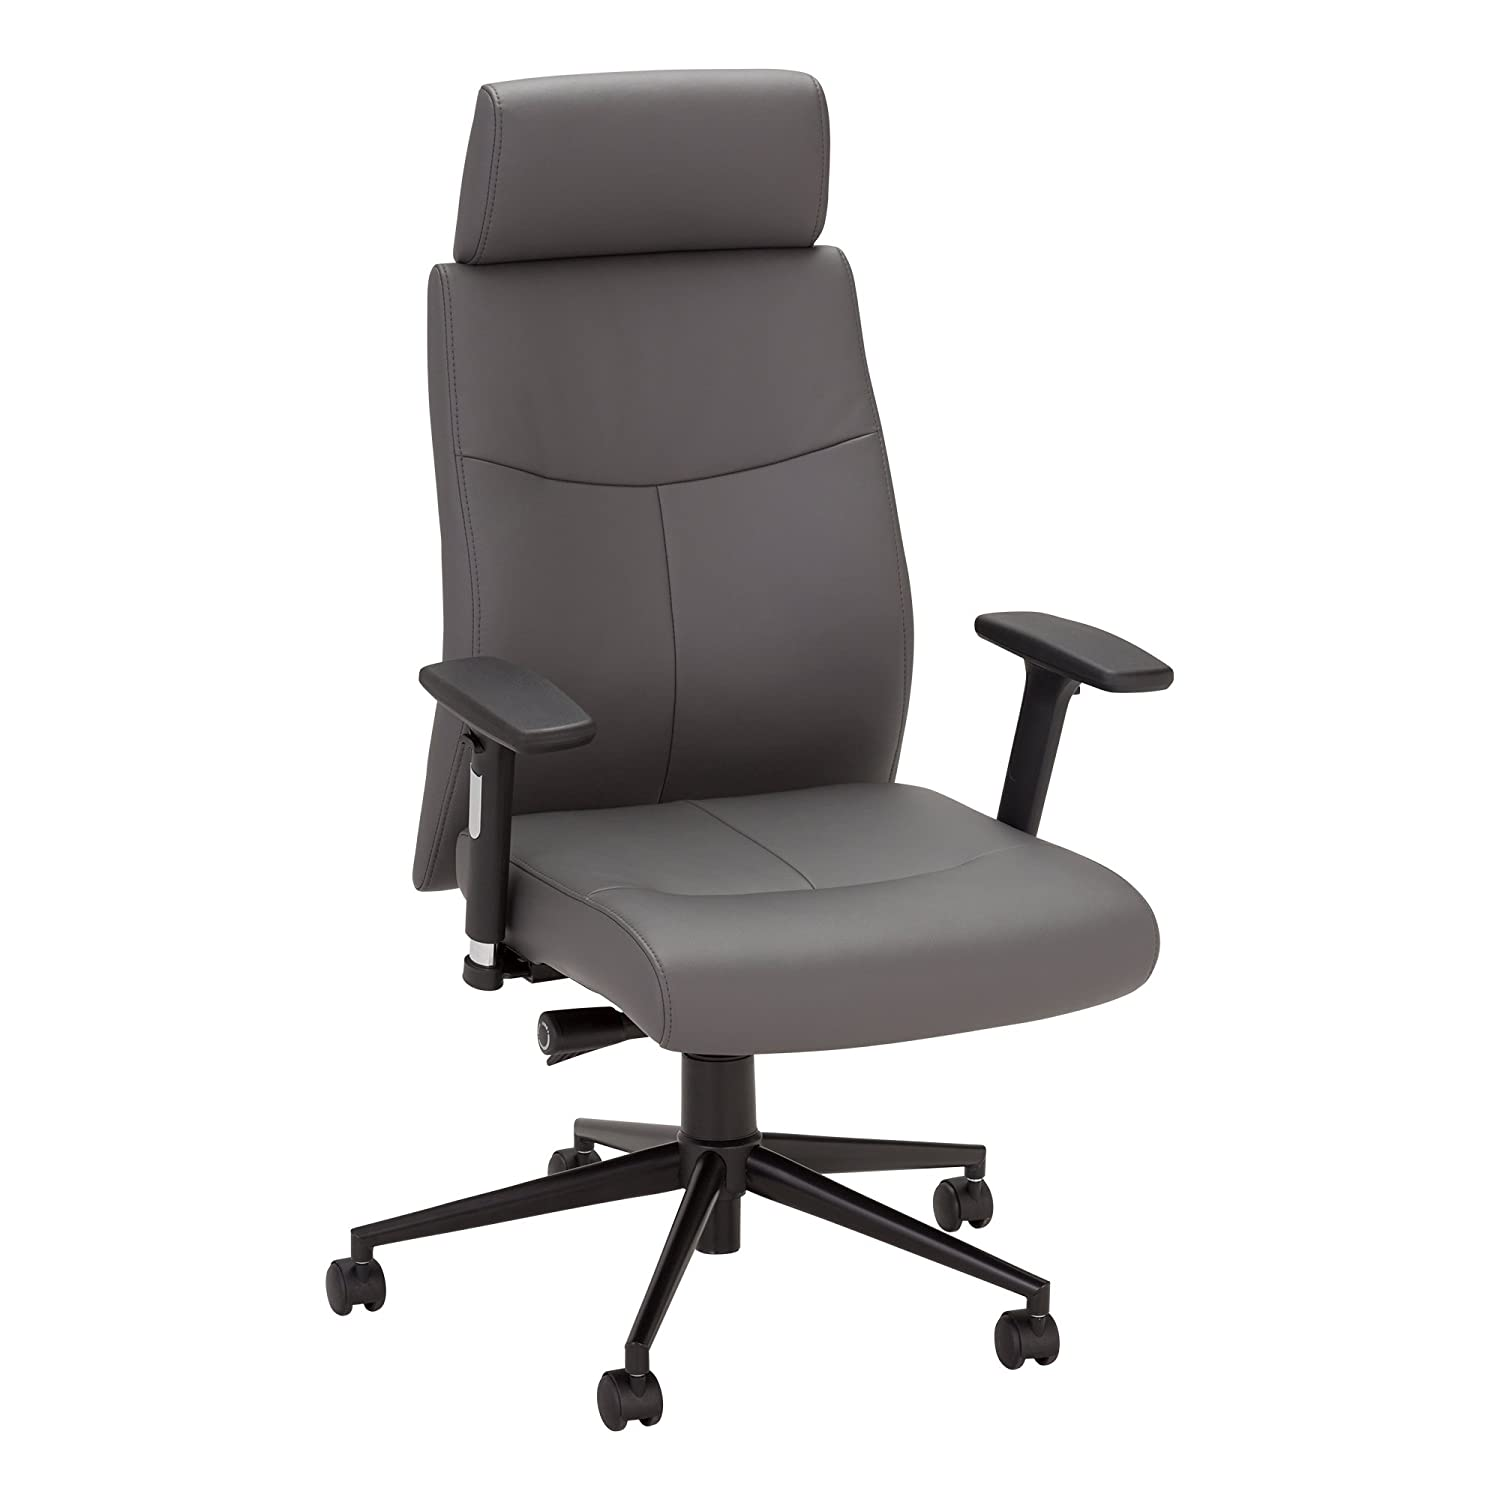 Norwood Commercial Furniture Ergonomic Fully-Adjustable Executive Office Desk Chair with Headrest, Gray, NOR-OUG3000GR-SO